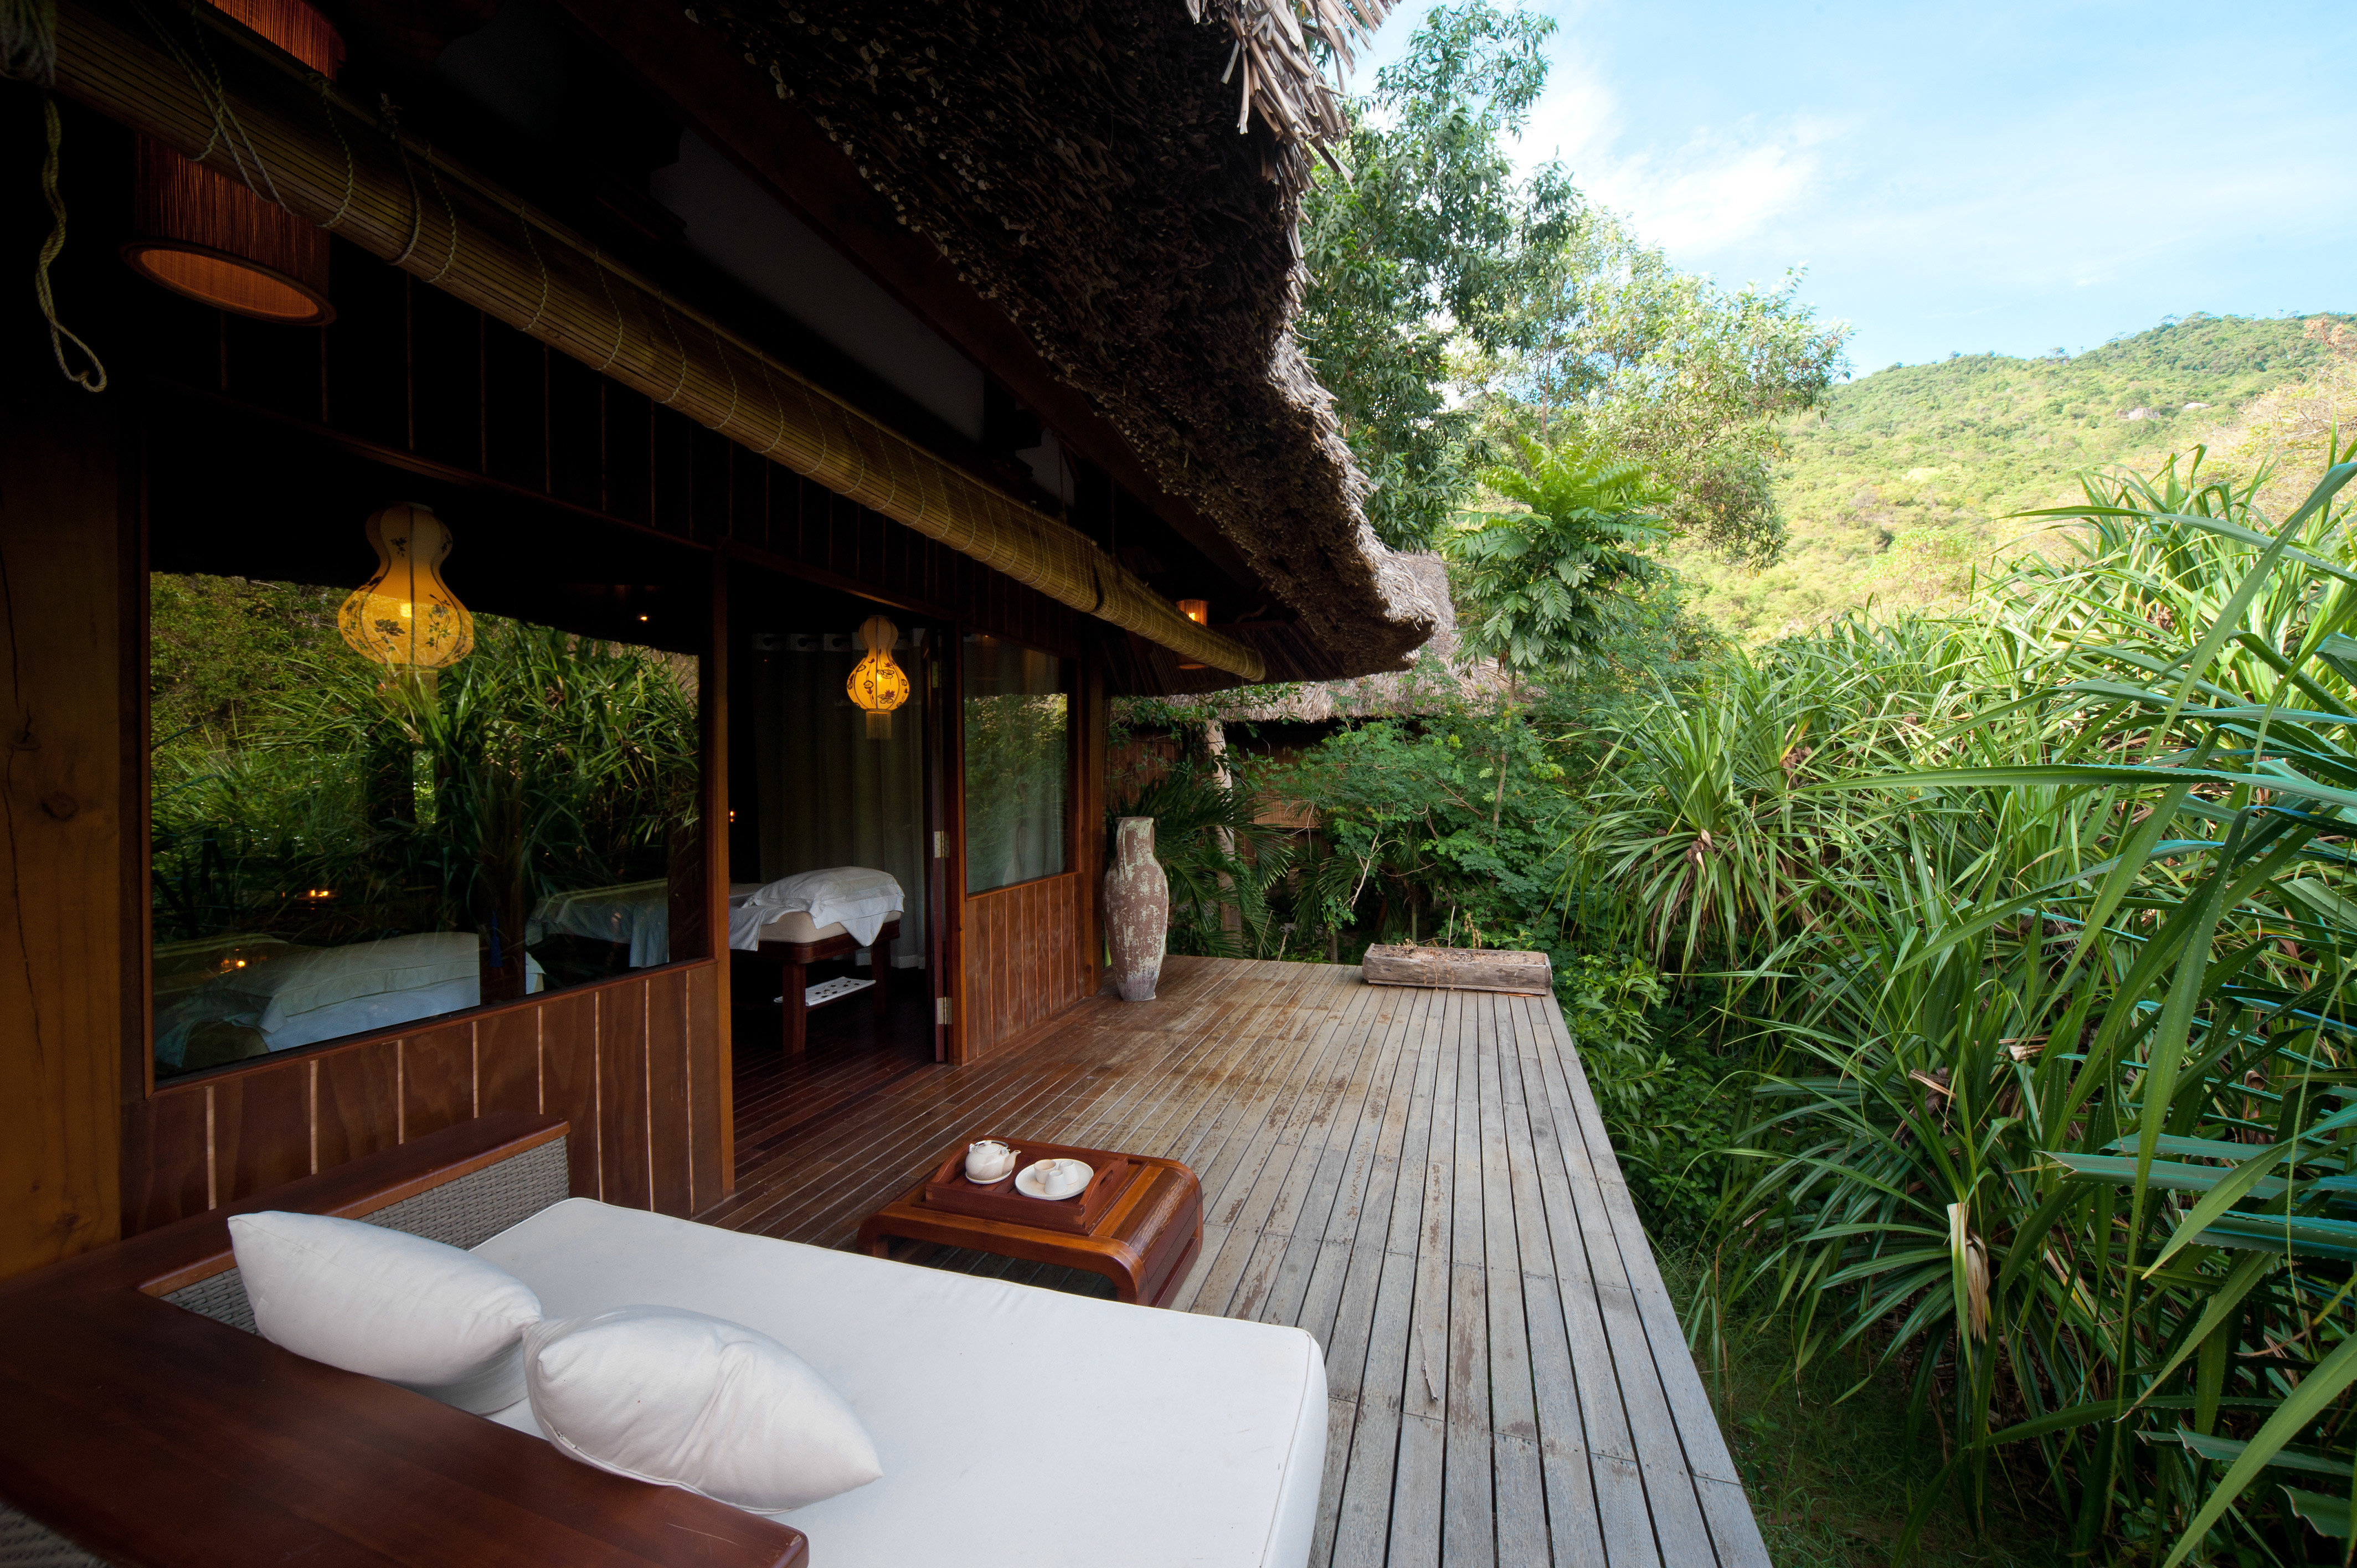 Balcony Country Deck Eco Elegant Forest Jungle Luxury Mountains Nature Outdoor Activities Scenic views Tropical Villa Waterfront tree property house Resort cottage home backyard stone